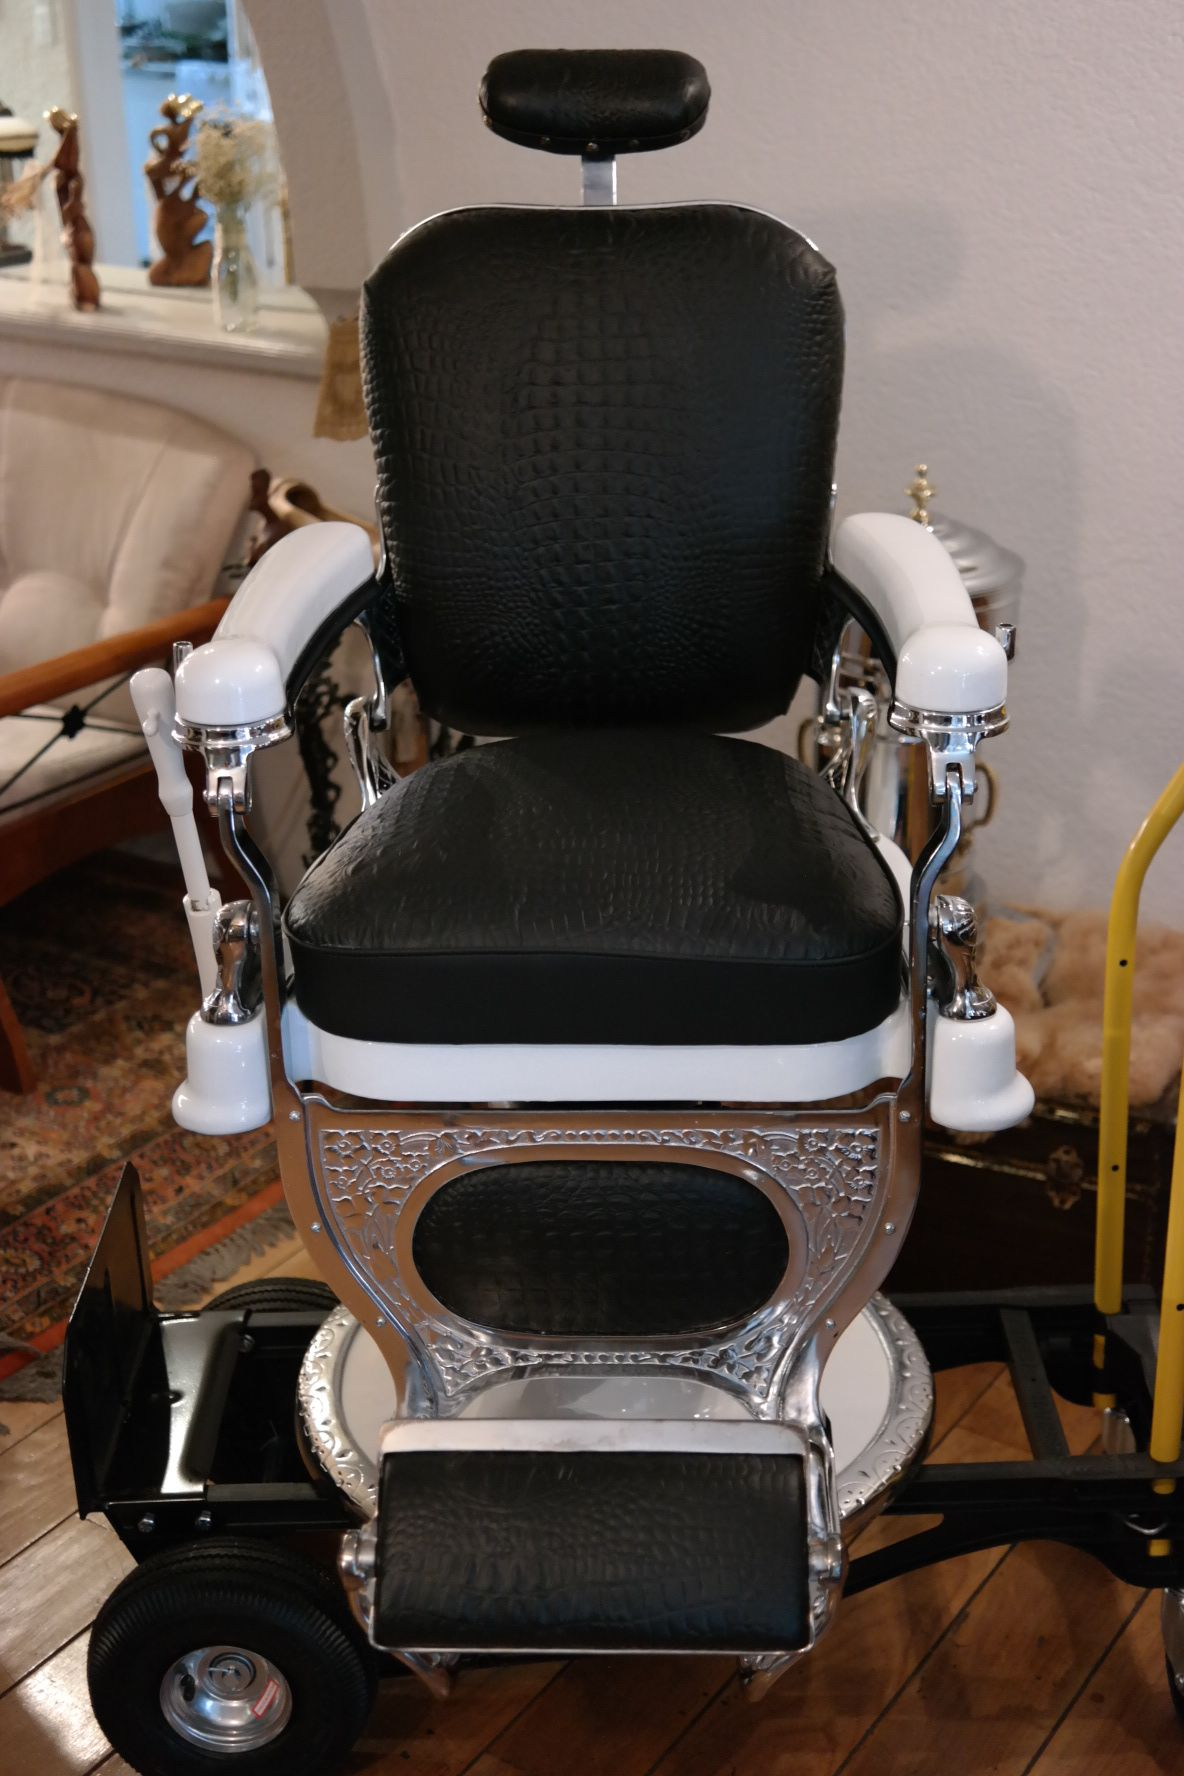 Behind the chair ecards - Explore Barber Chair Colombia And More